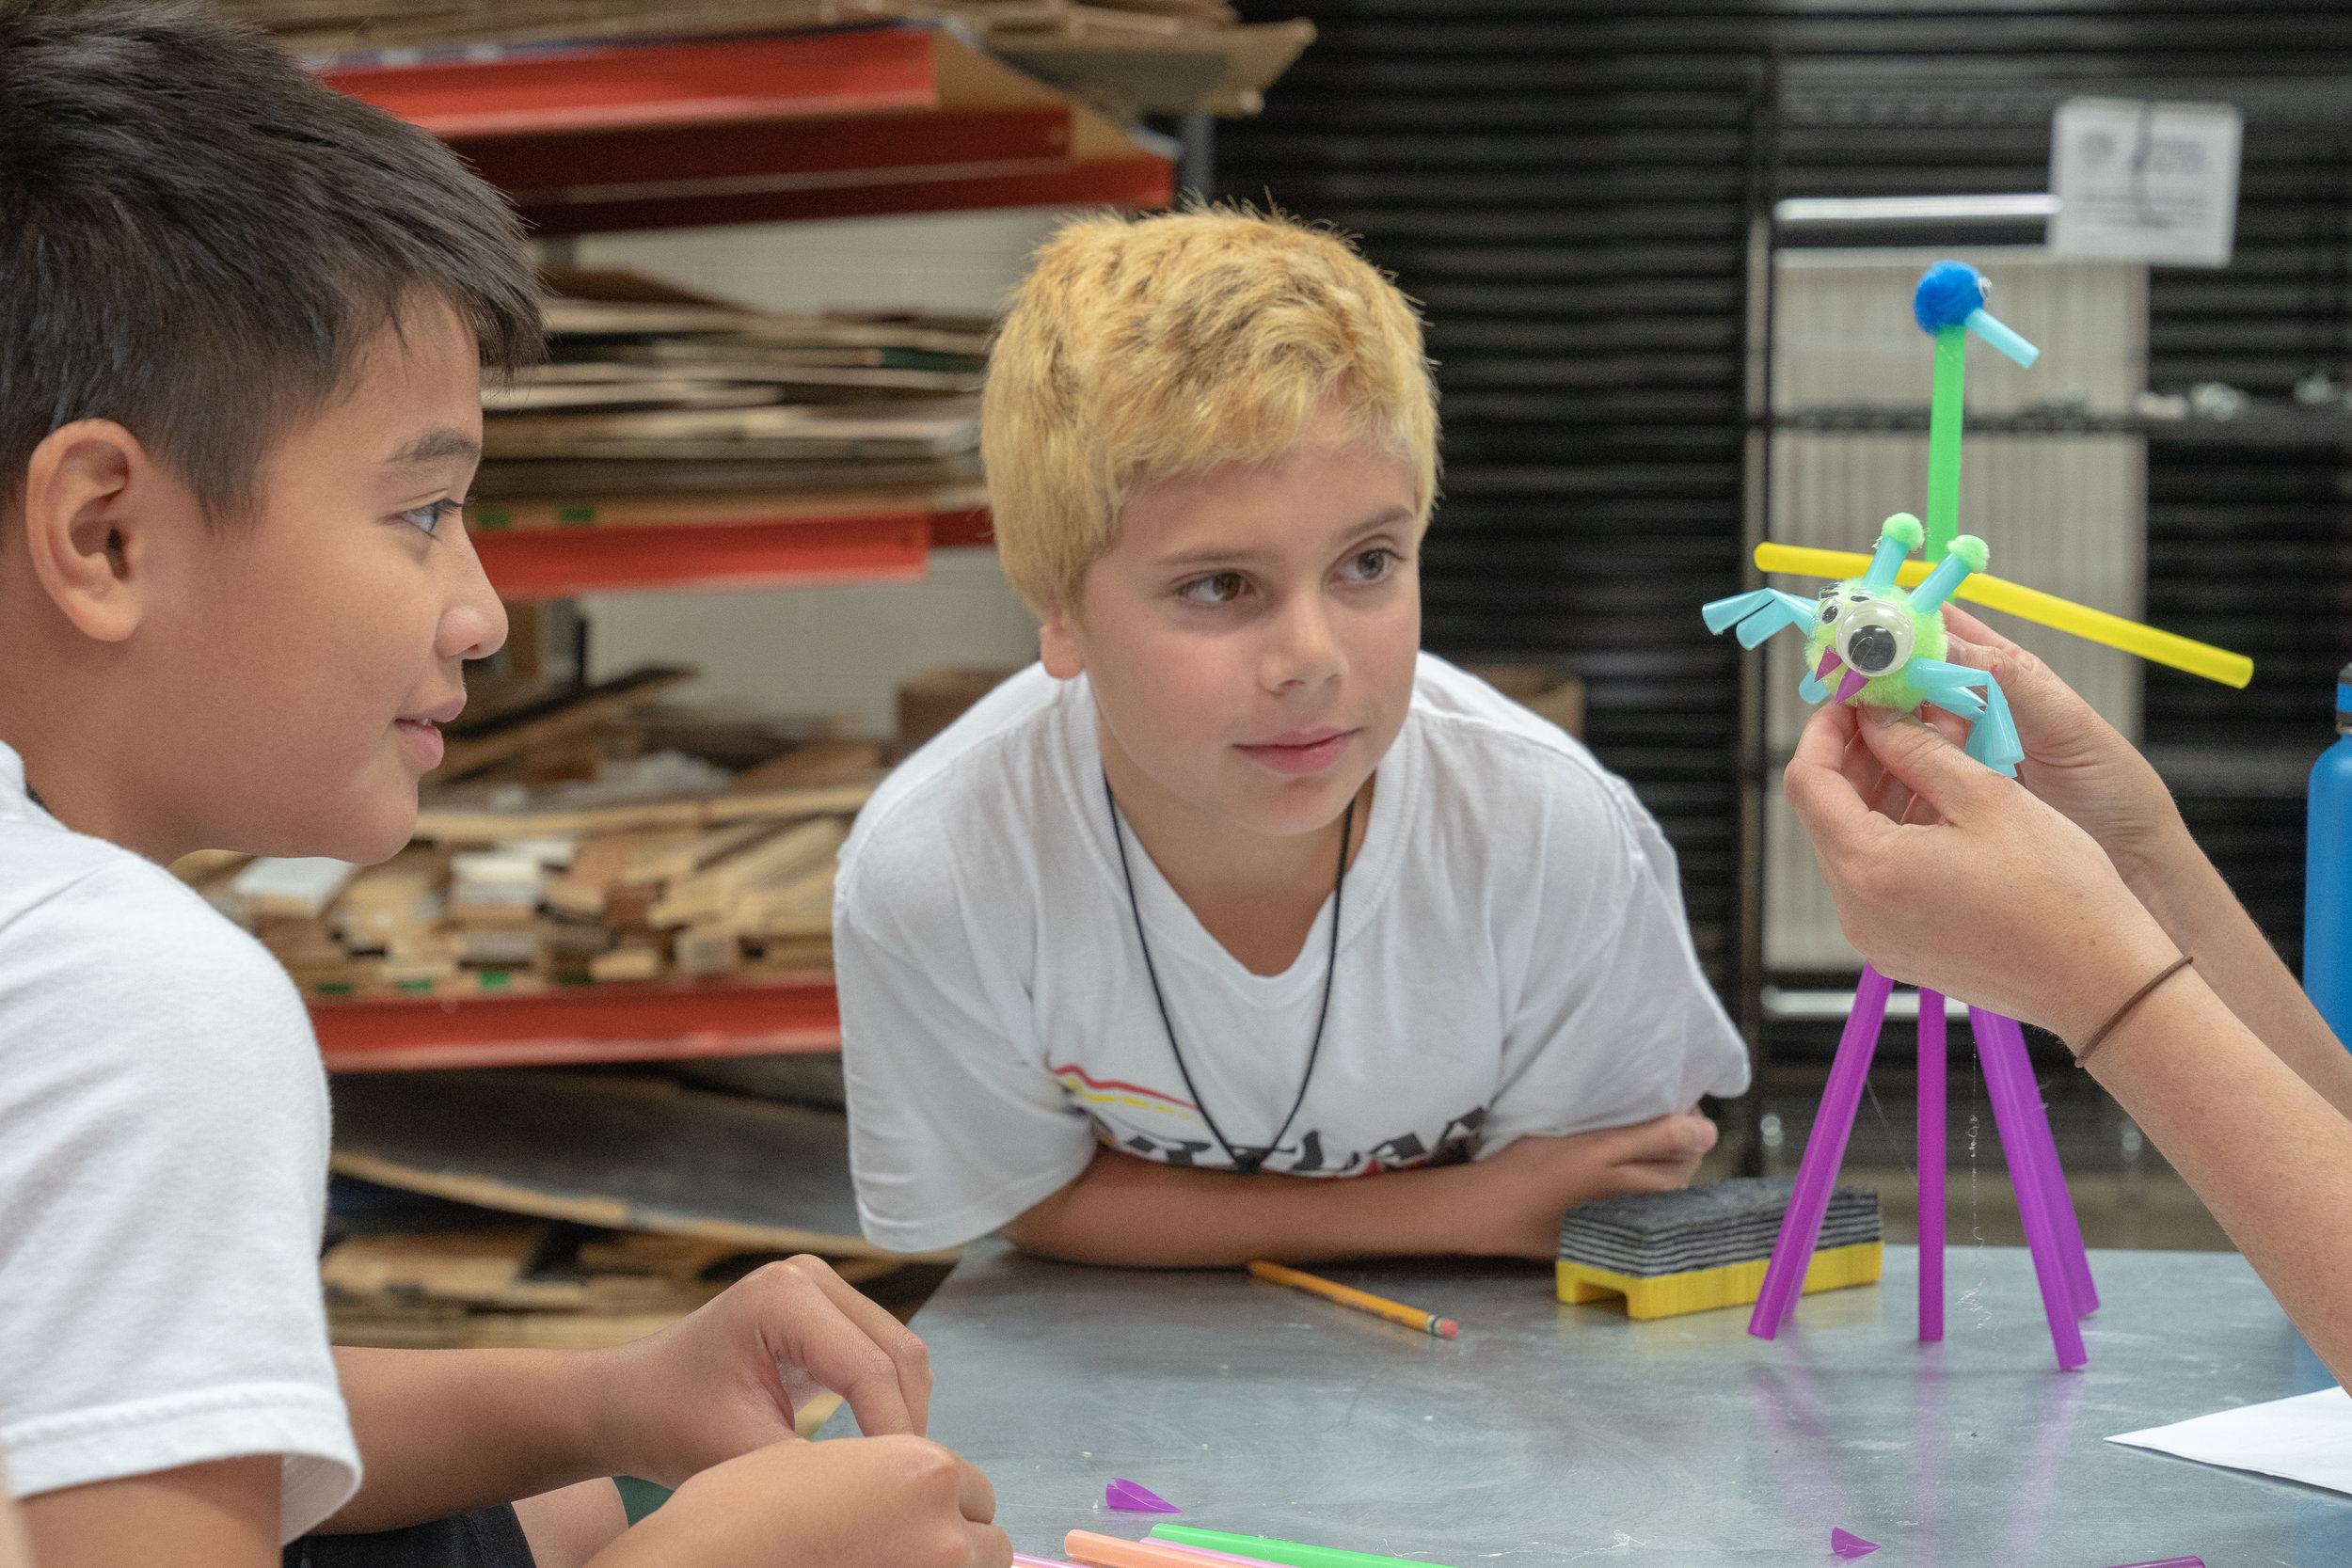 Developing student's imaginations lays the foundation for skills need to build exciting scenery.